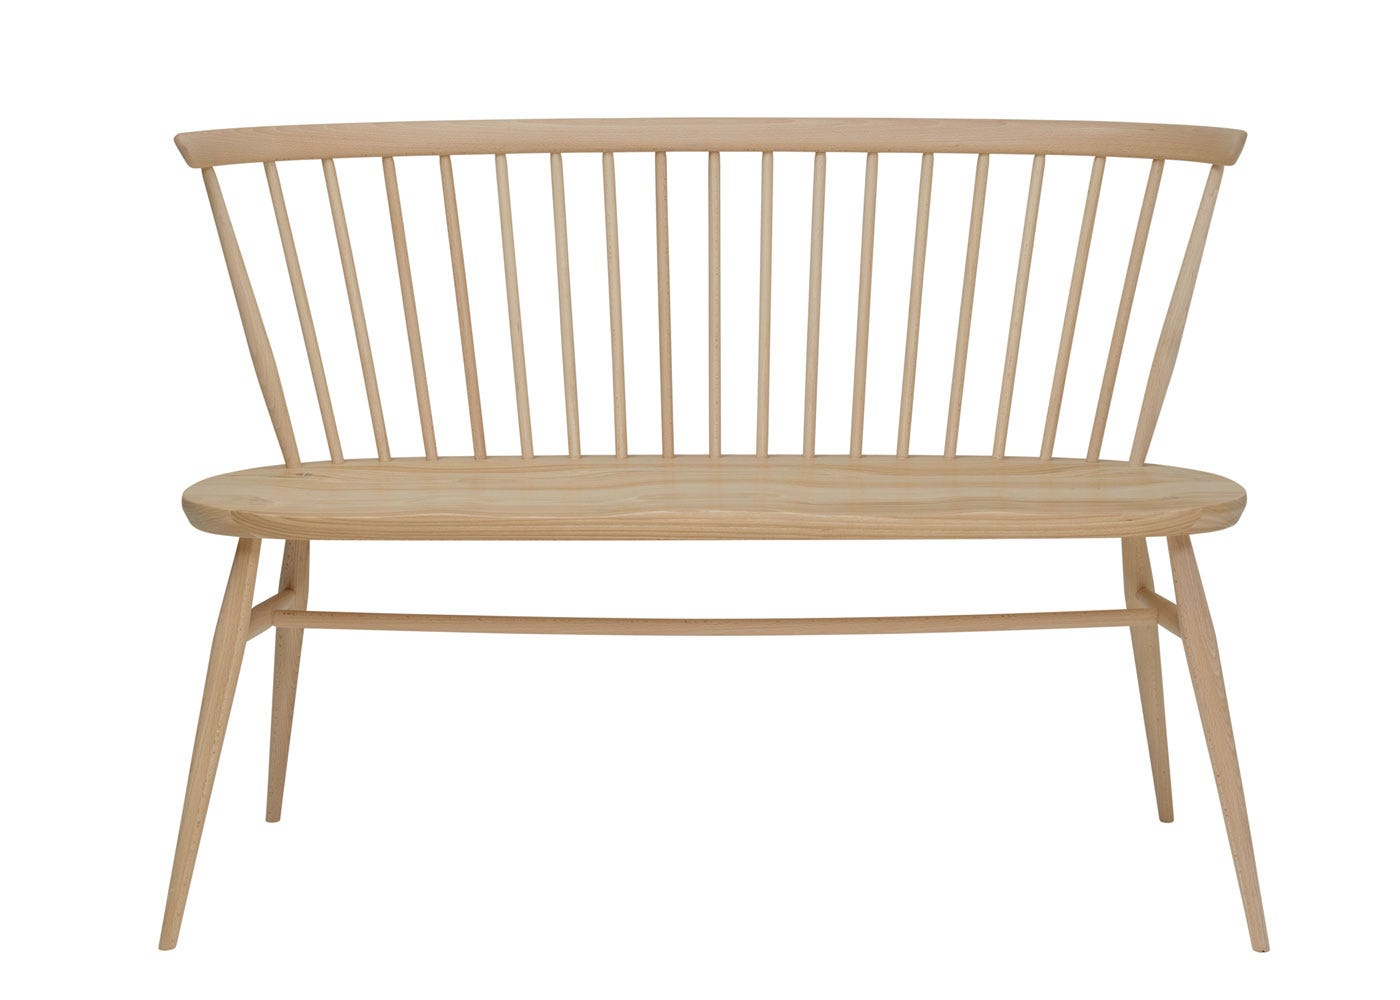 As shown: Originals Loveseat Beech and Elm - Front Profile.